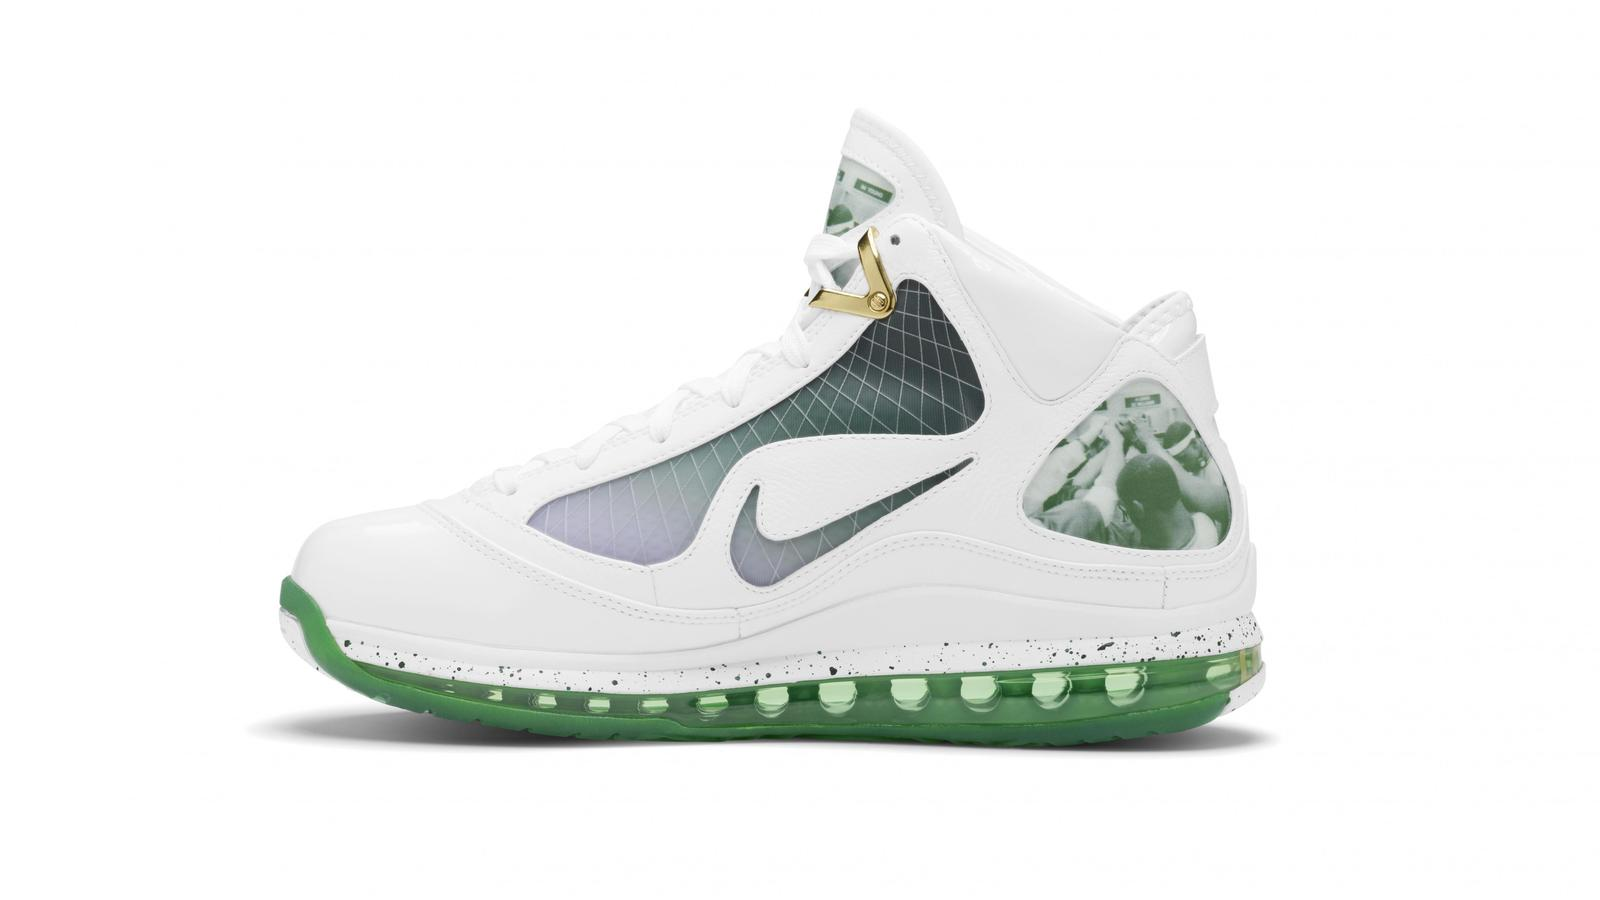 ba439144b26 London Limited-Edition Air Max LeBron VII Released - Nike News